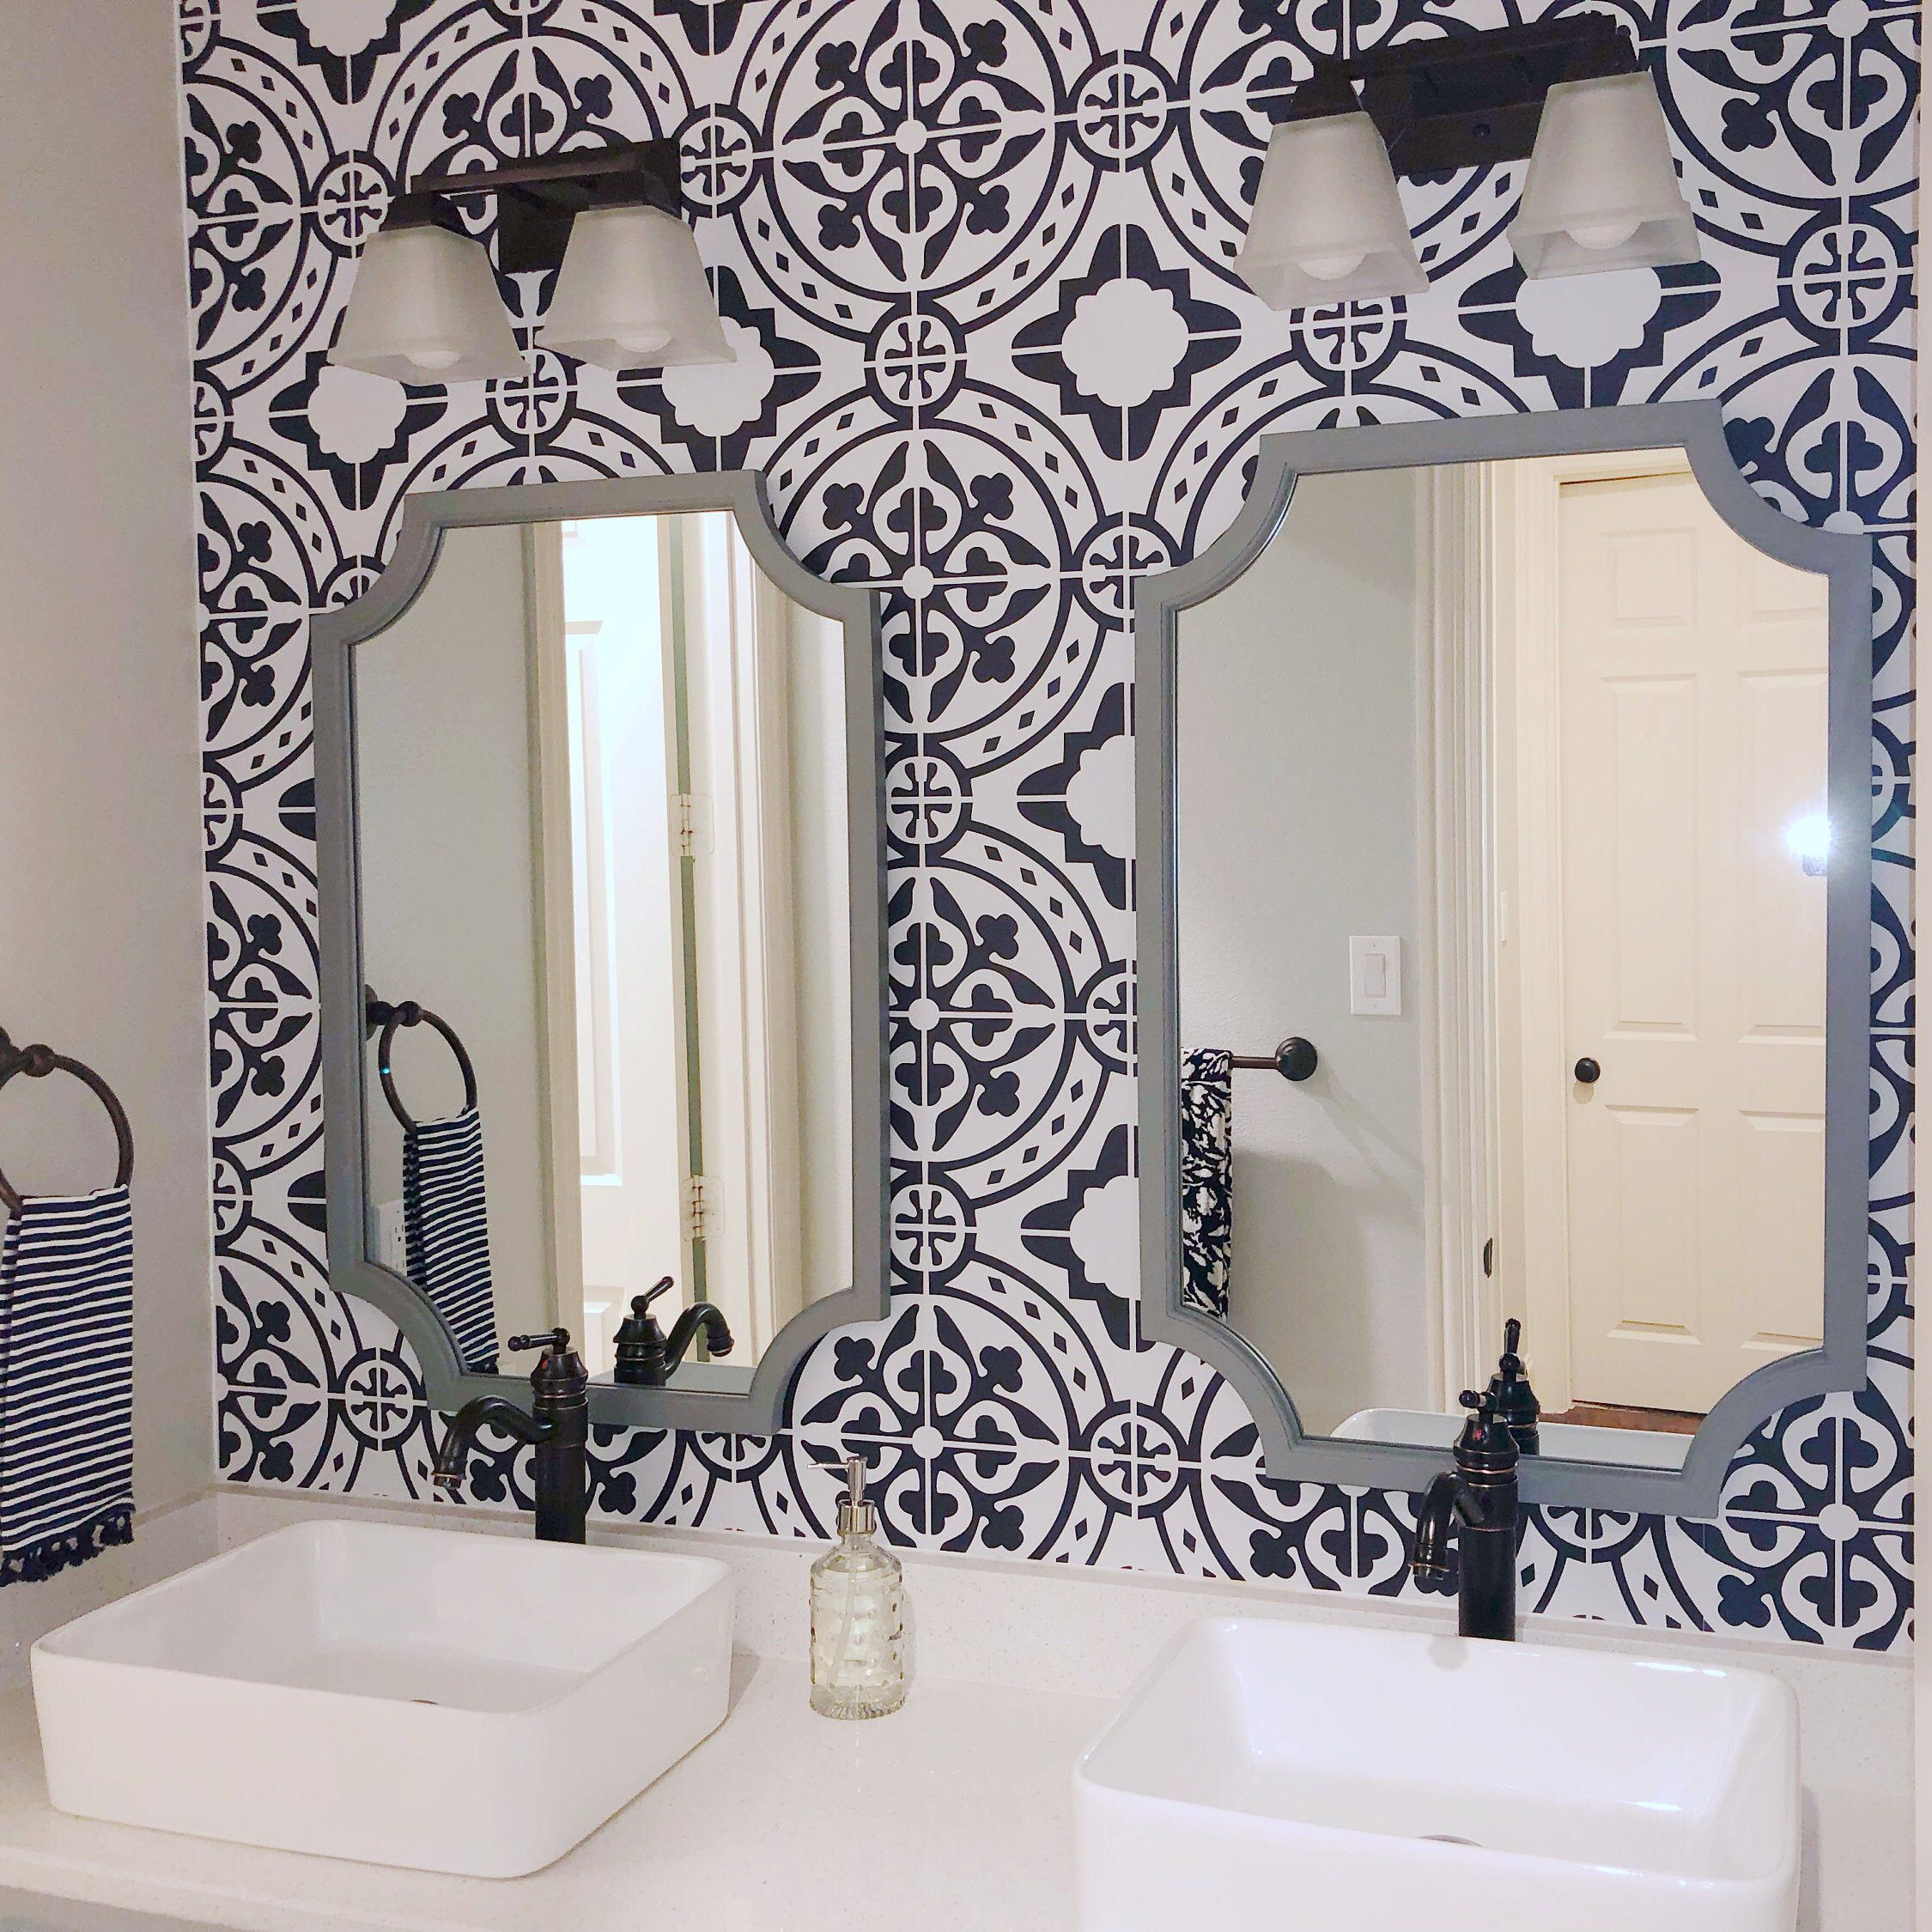 Moroccan Tile Peel And Stick Wallpaper Removable Wallpaper Etsy In 2020 Peel And Stick Wallpaper Tile Wallpaper Bathroom Wallpaper